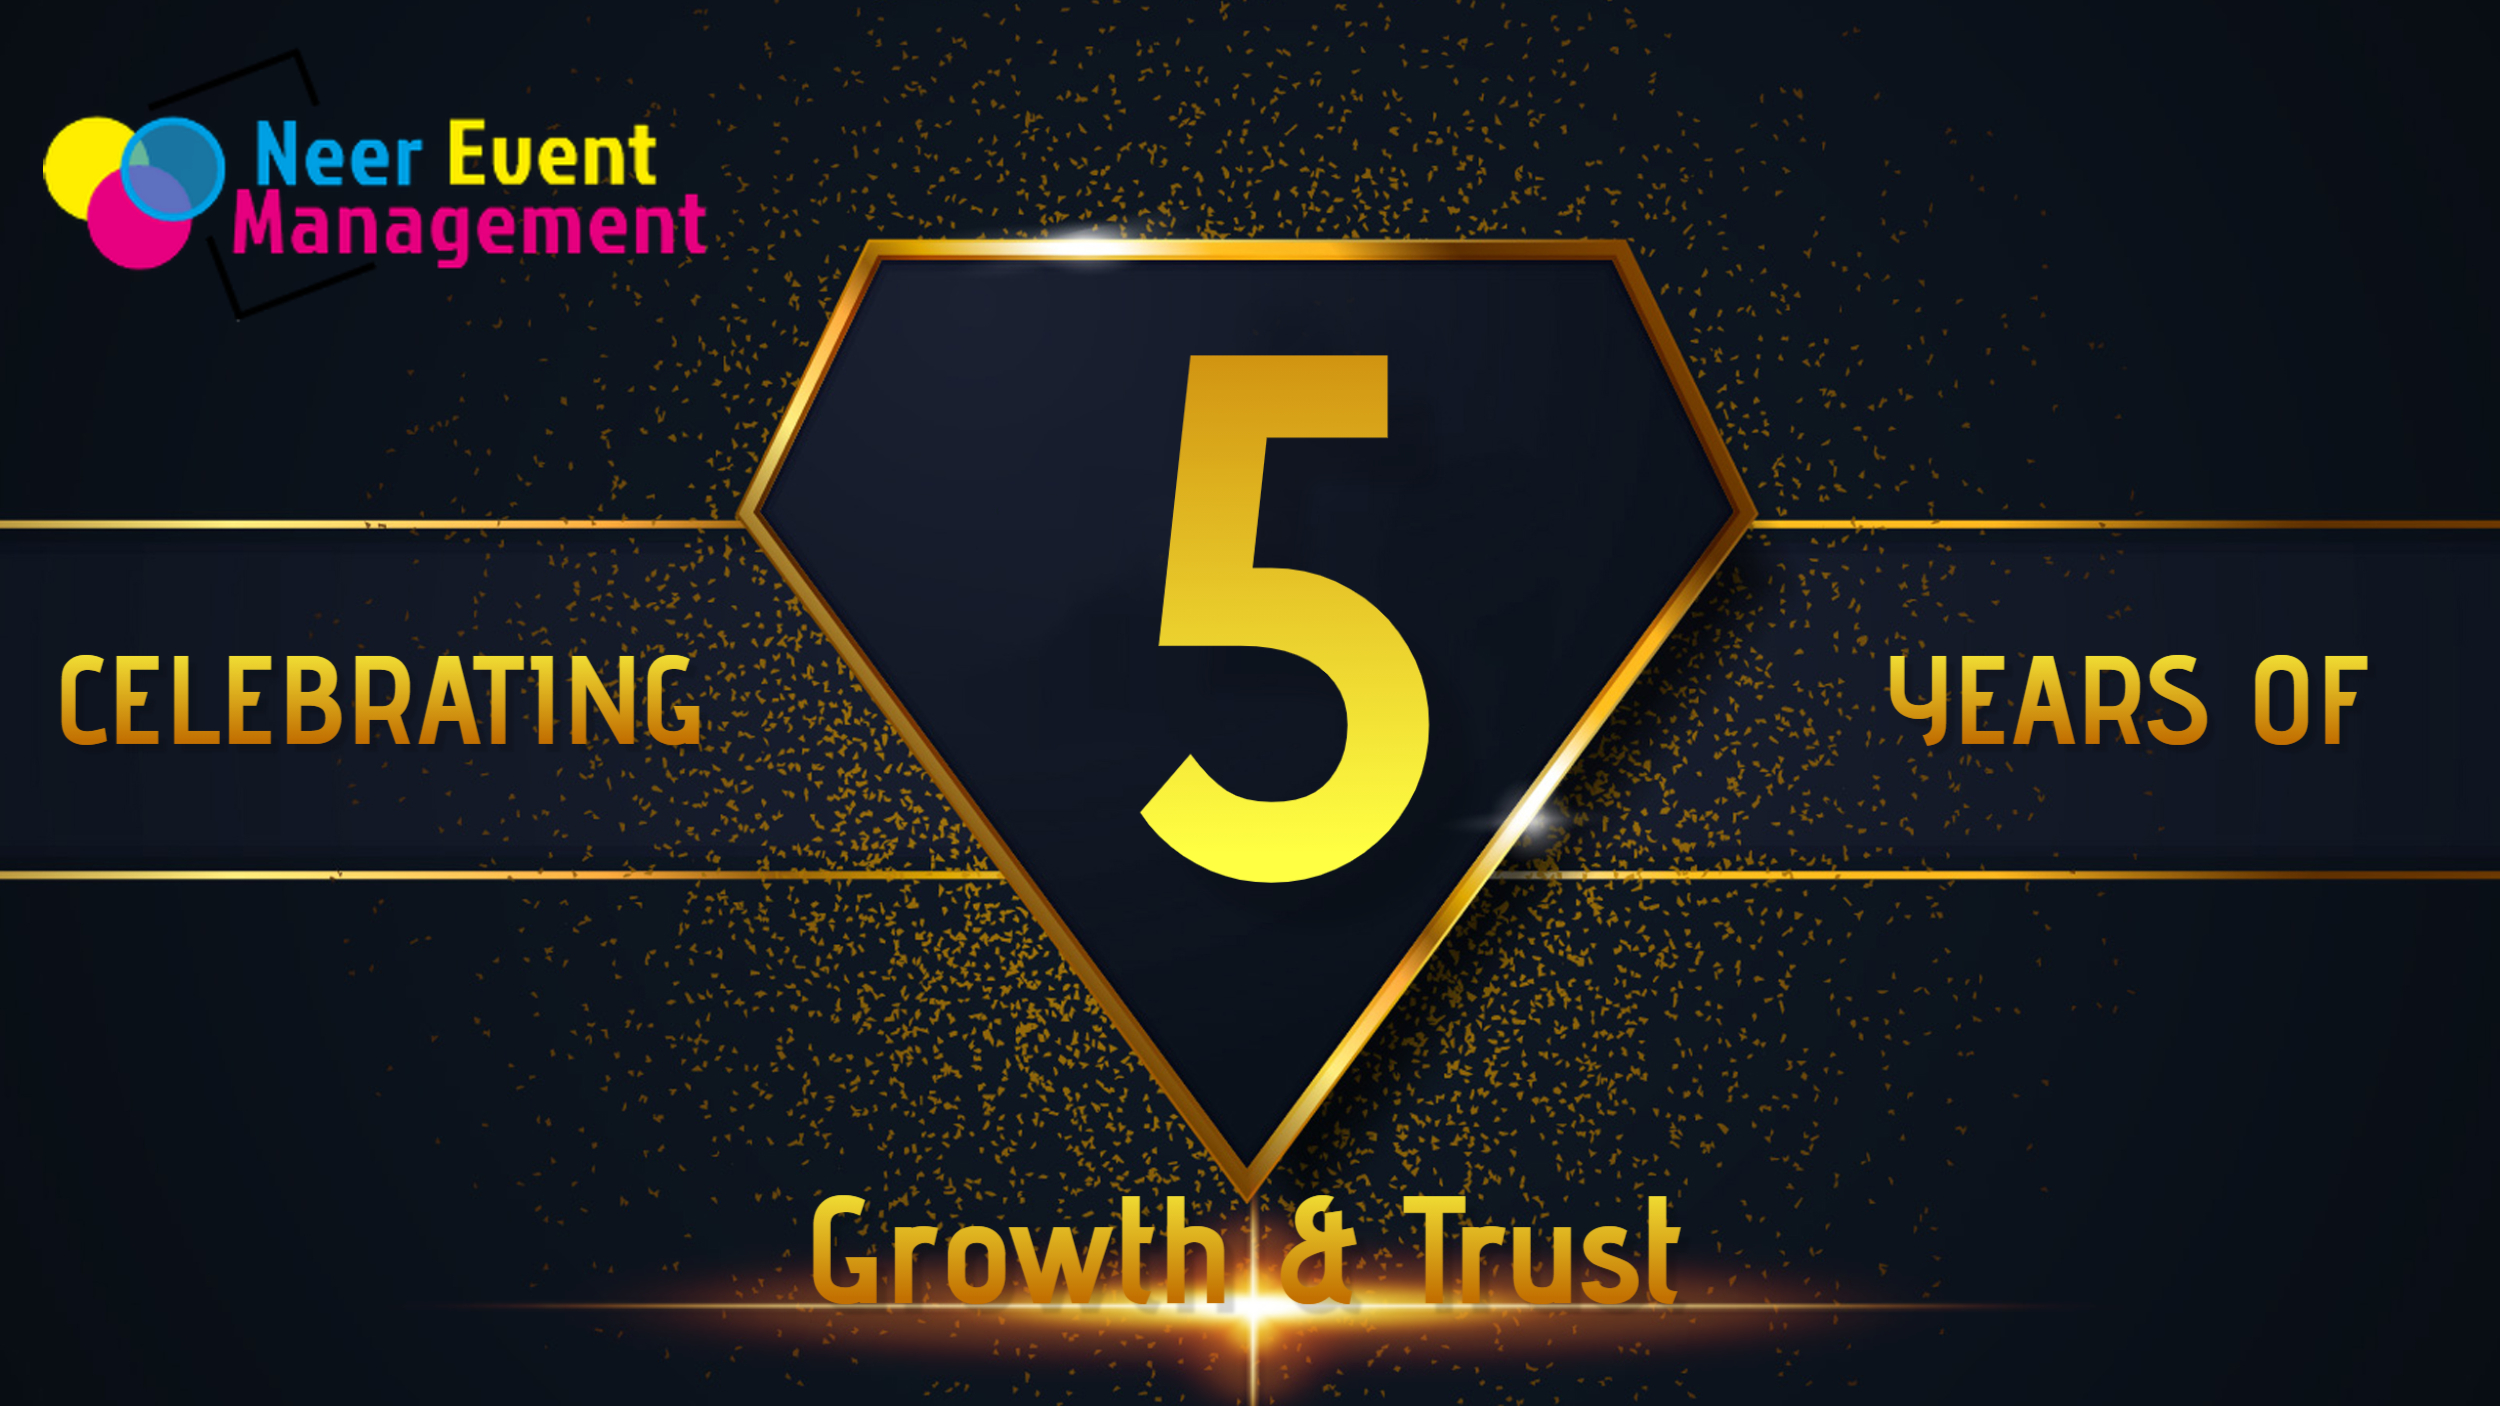 Celebrating 5 years of Growth & Trust